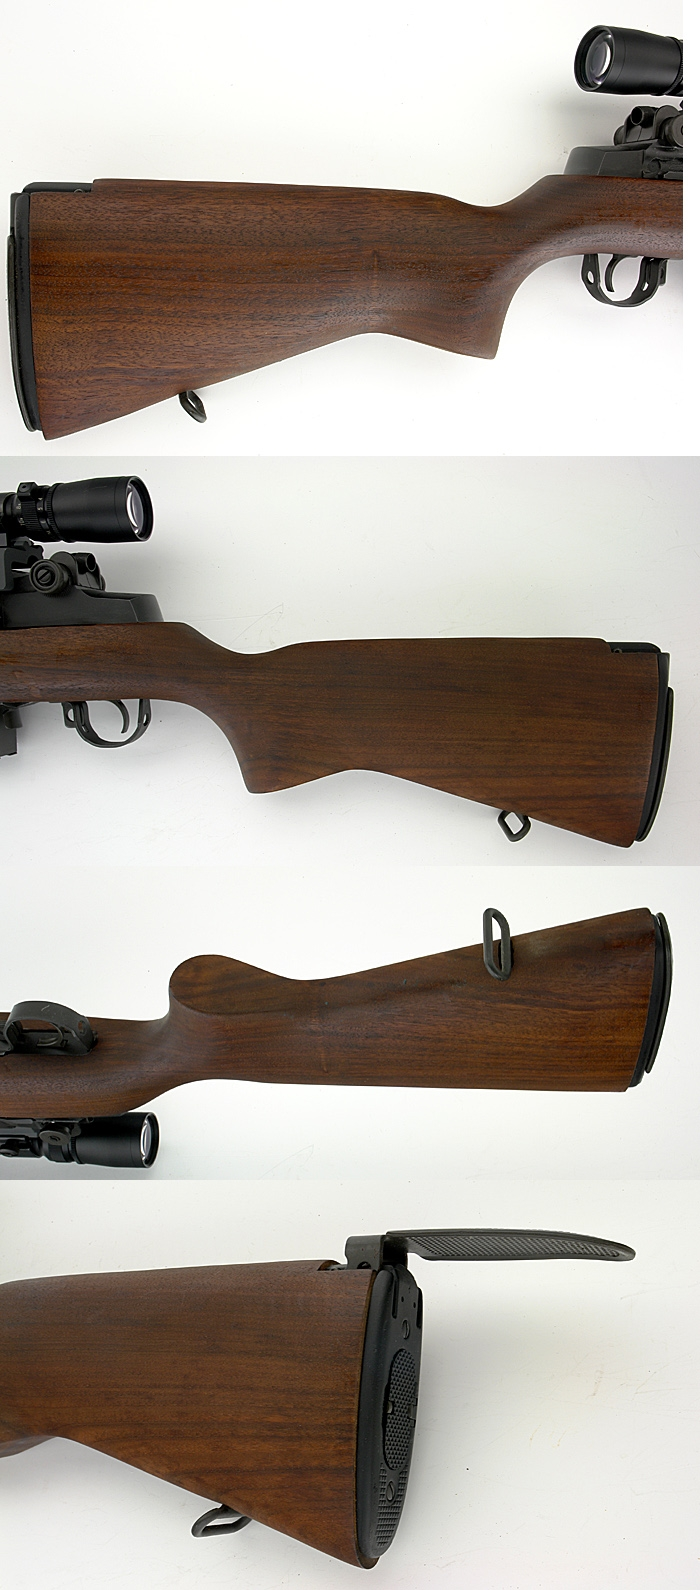 SPRINGFIELD ARMORY M1A SUPER - MATCH RIFLE WITH LEOPOLD SCOPE .308 WIN - Picture 3